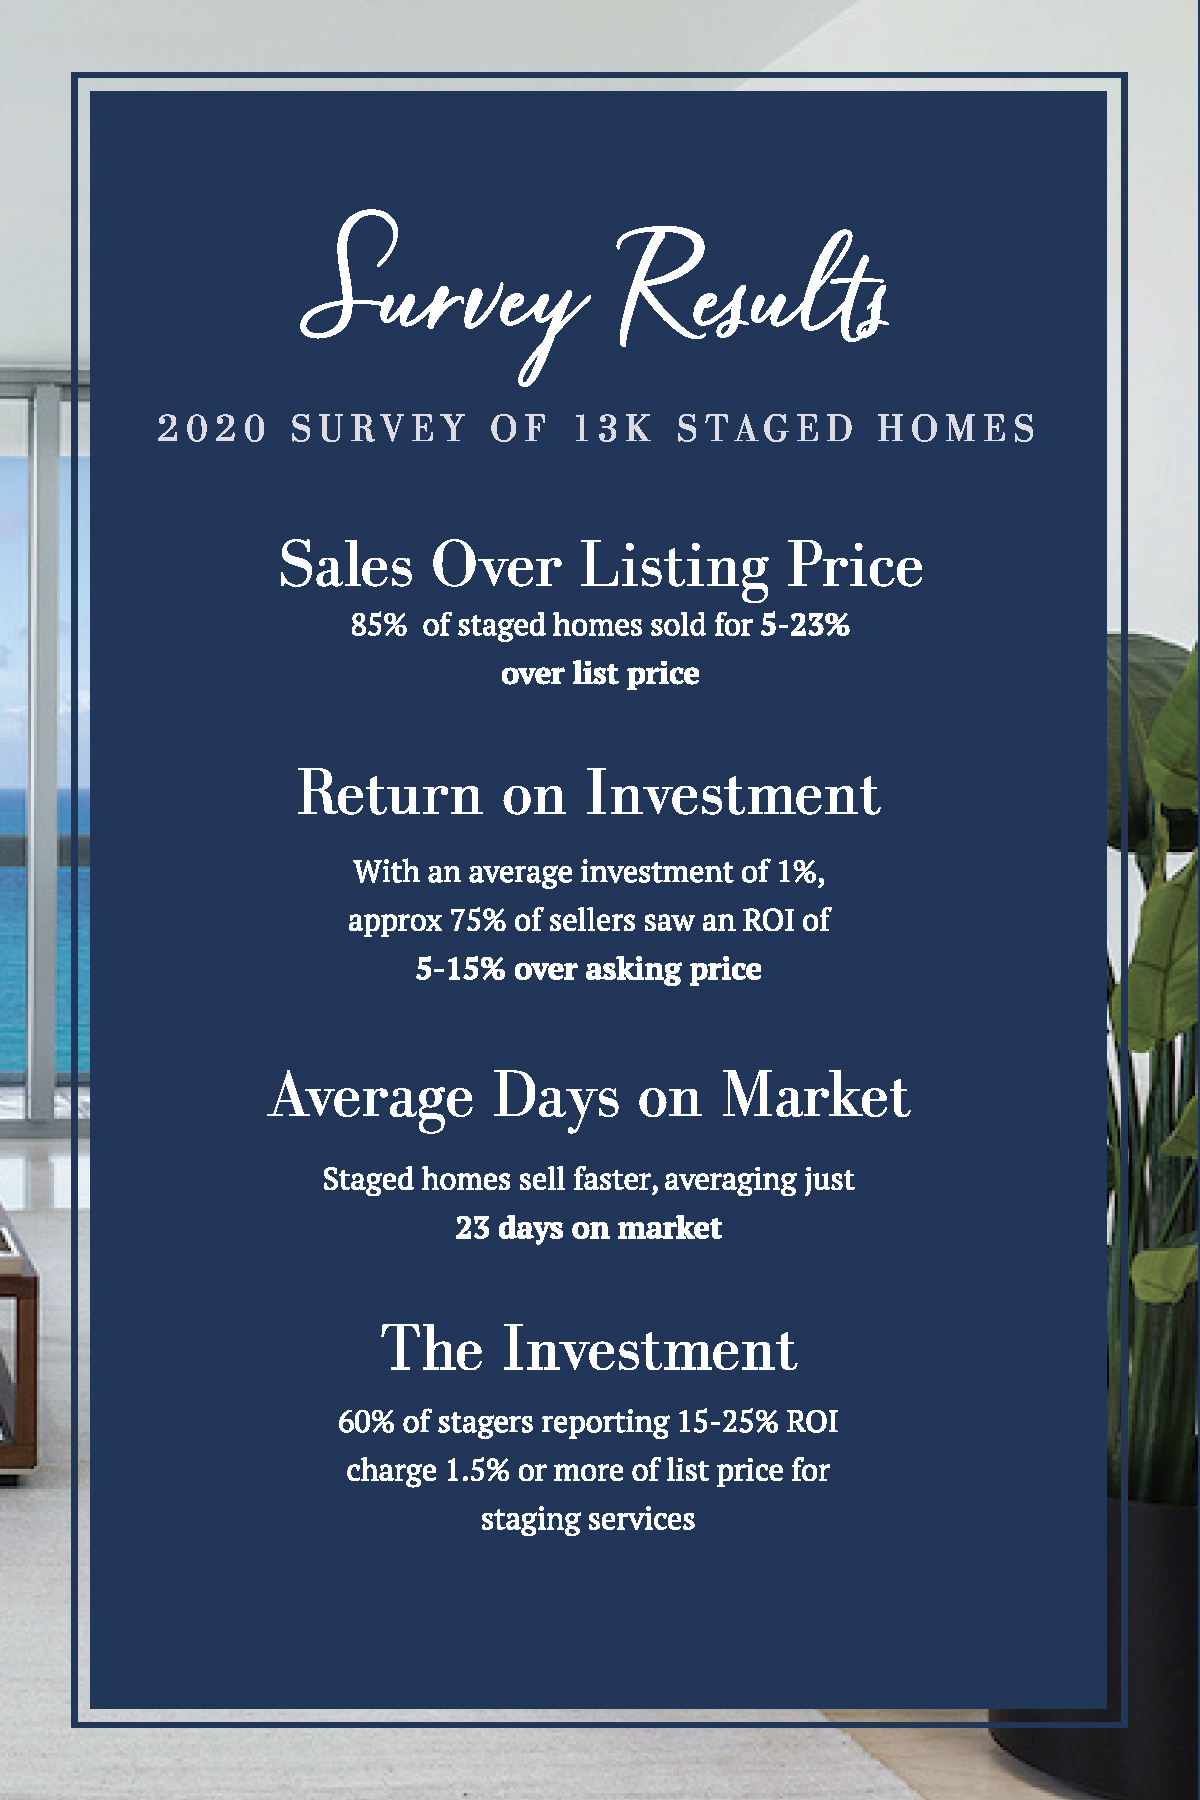 2020 Survey Results of 13K Staged Homes